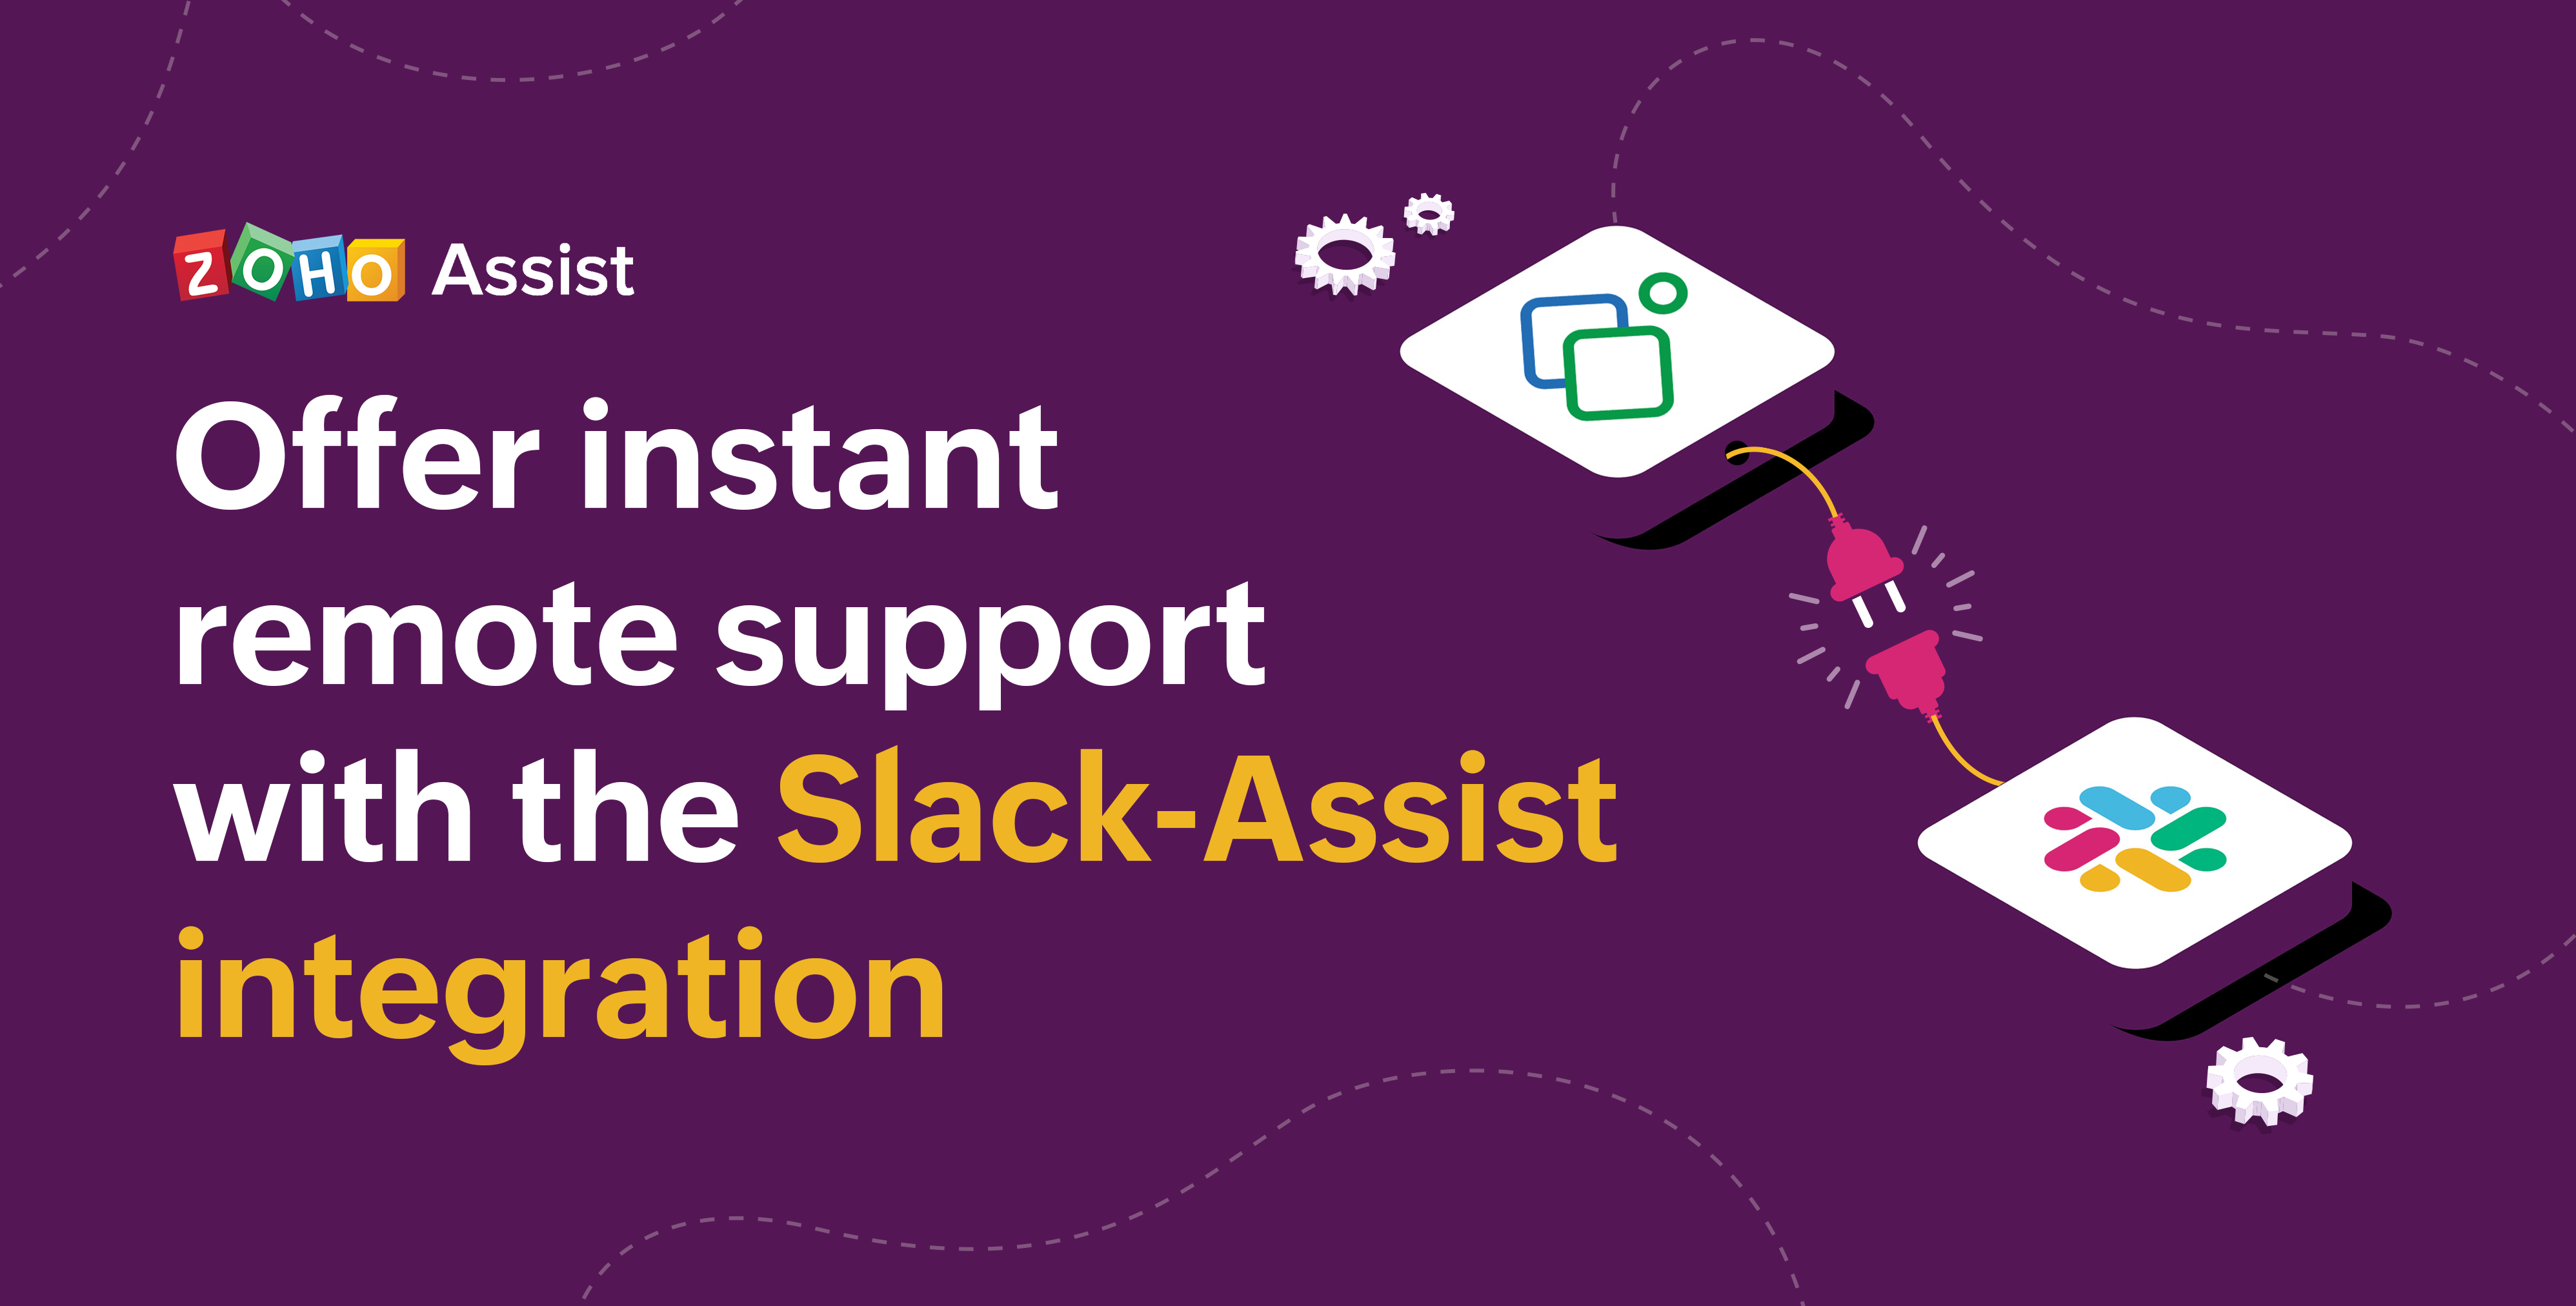 Gain control of a remote PC, Mac, or mobile device to provide remote support from Slack